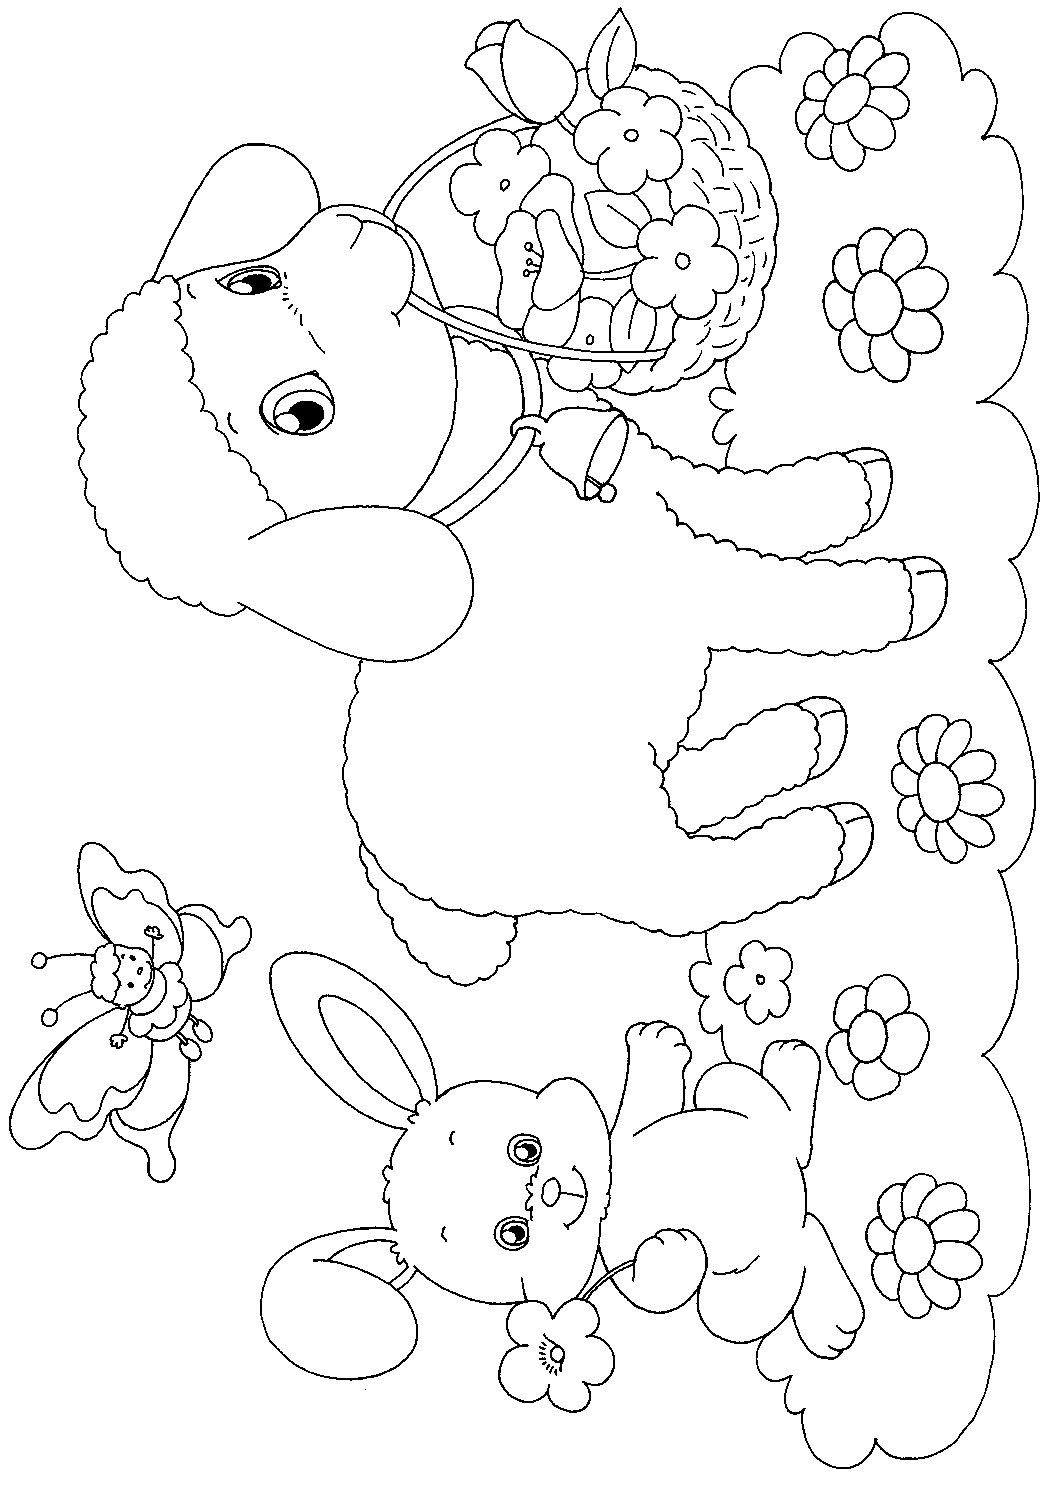 printable easter coloring pages for toddlers easter colouring easter paper craft to print and colour printable for coloring easter pages toddlers